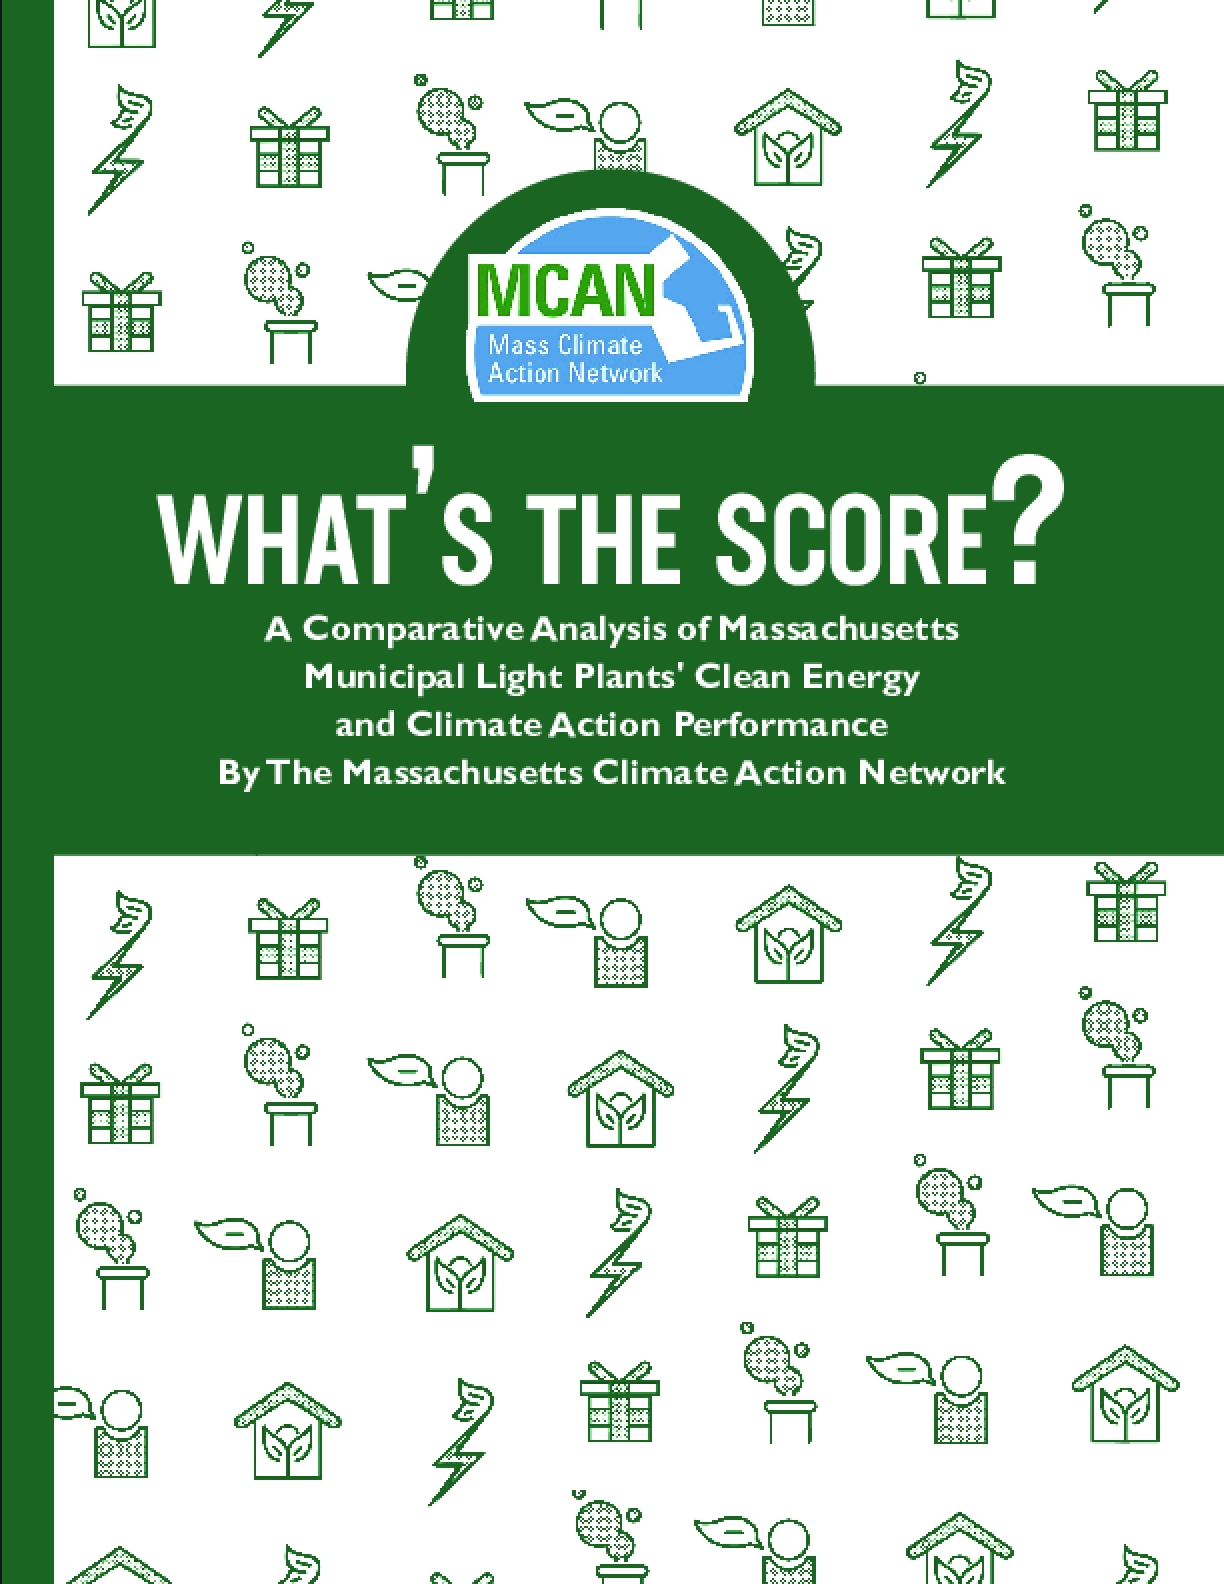 What's the Score? A Comparative Analysis of Massachusetts Municipal Light Plants' Clean Energy and Climate Action Performance